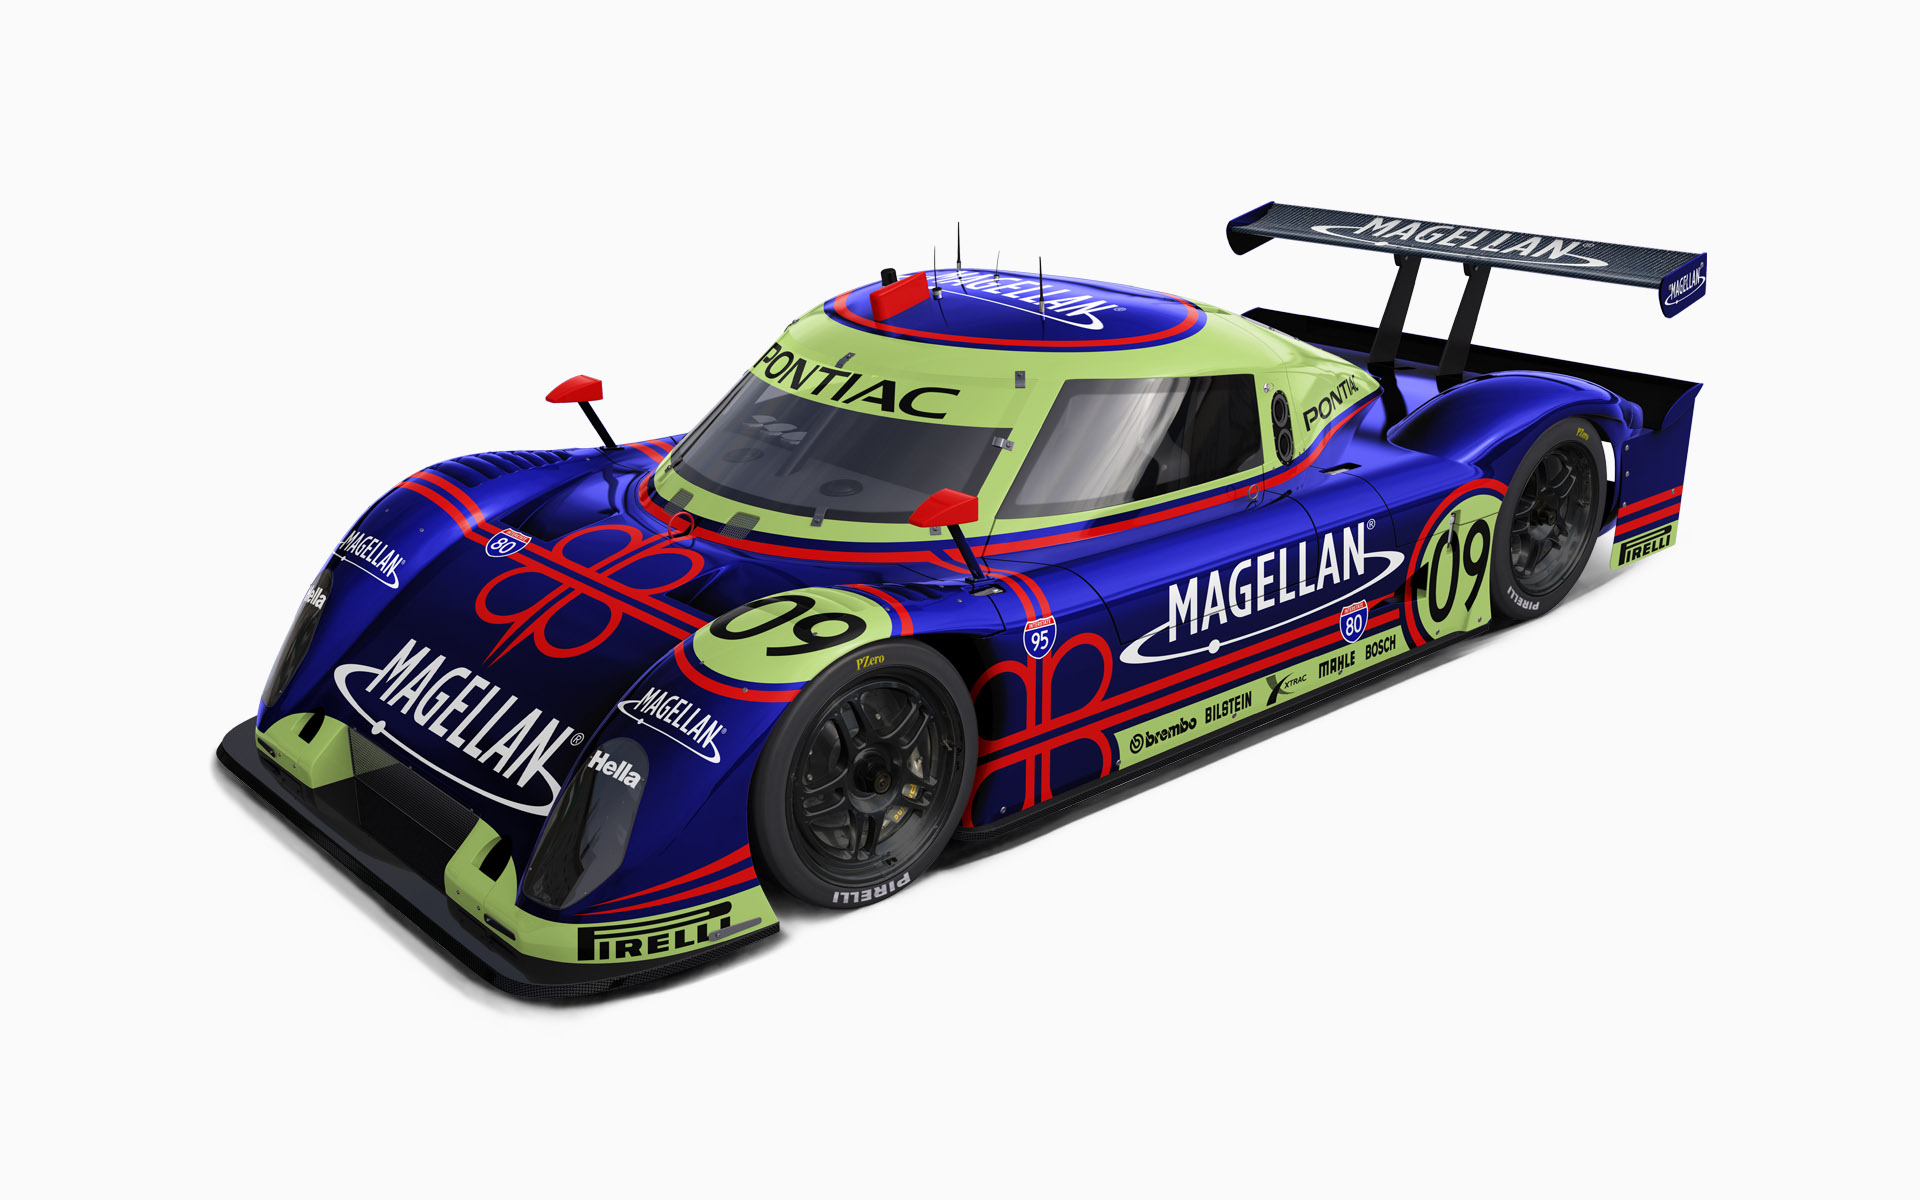 Justin Marks Racing Magellan Riley MKXX Daytona Prototype Livery Visualization